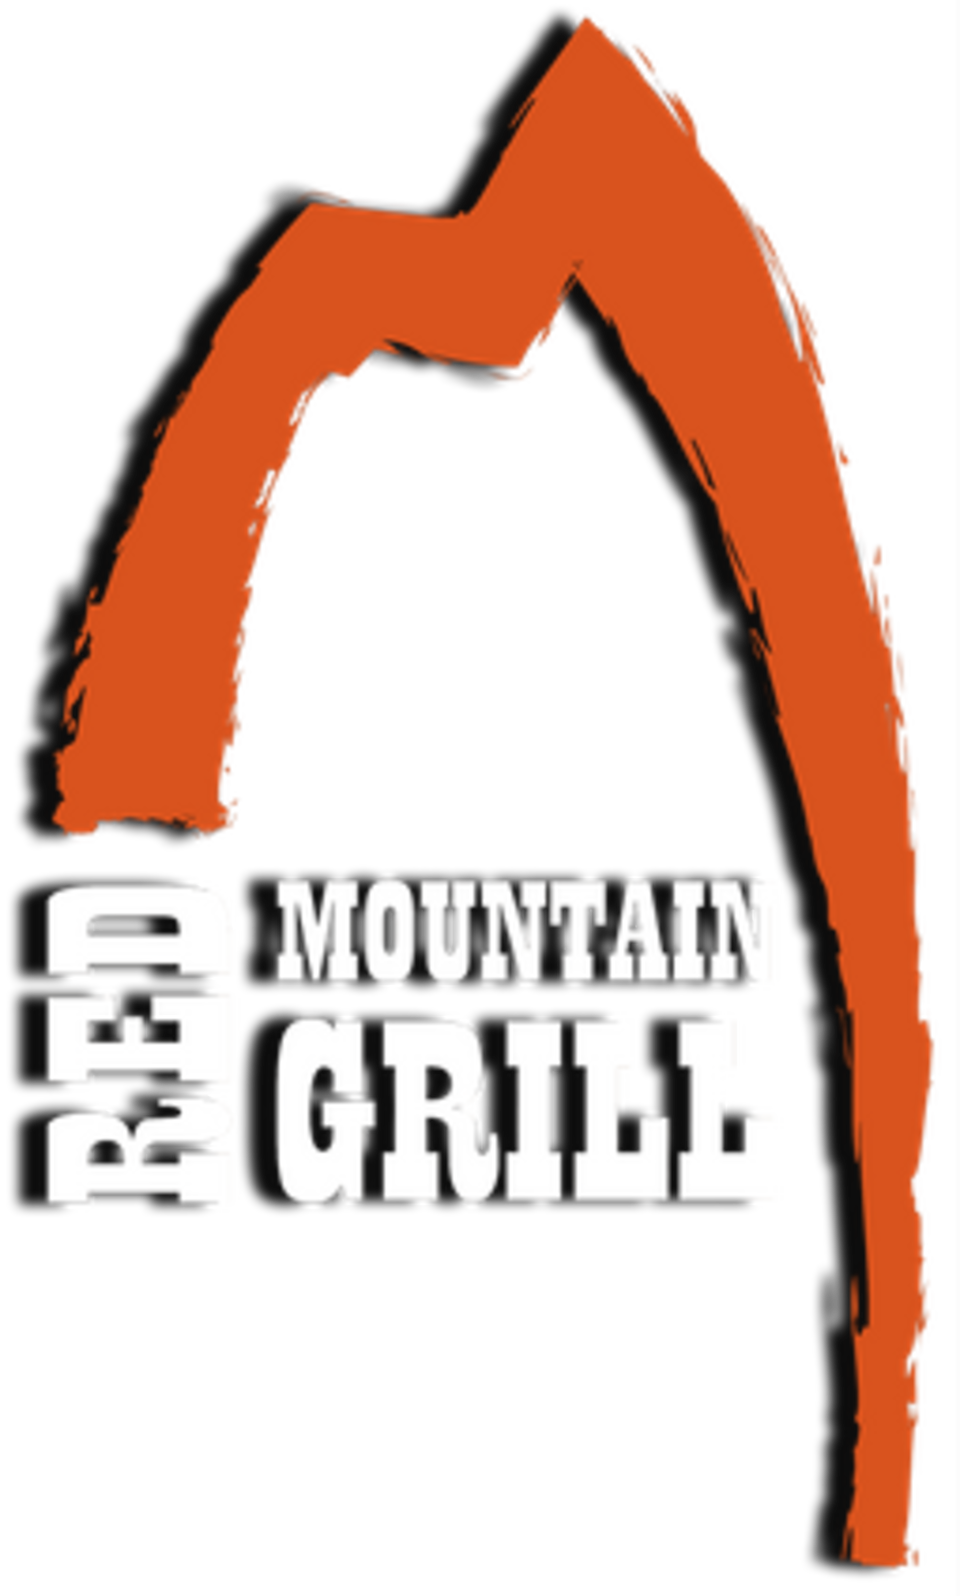 Red mountain grill logo   extracted from bus sign